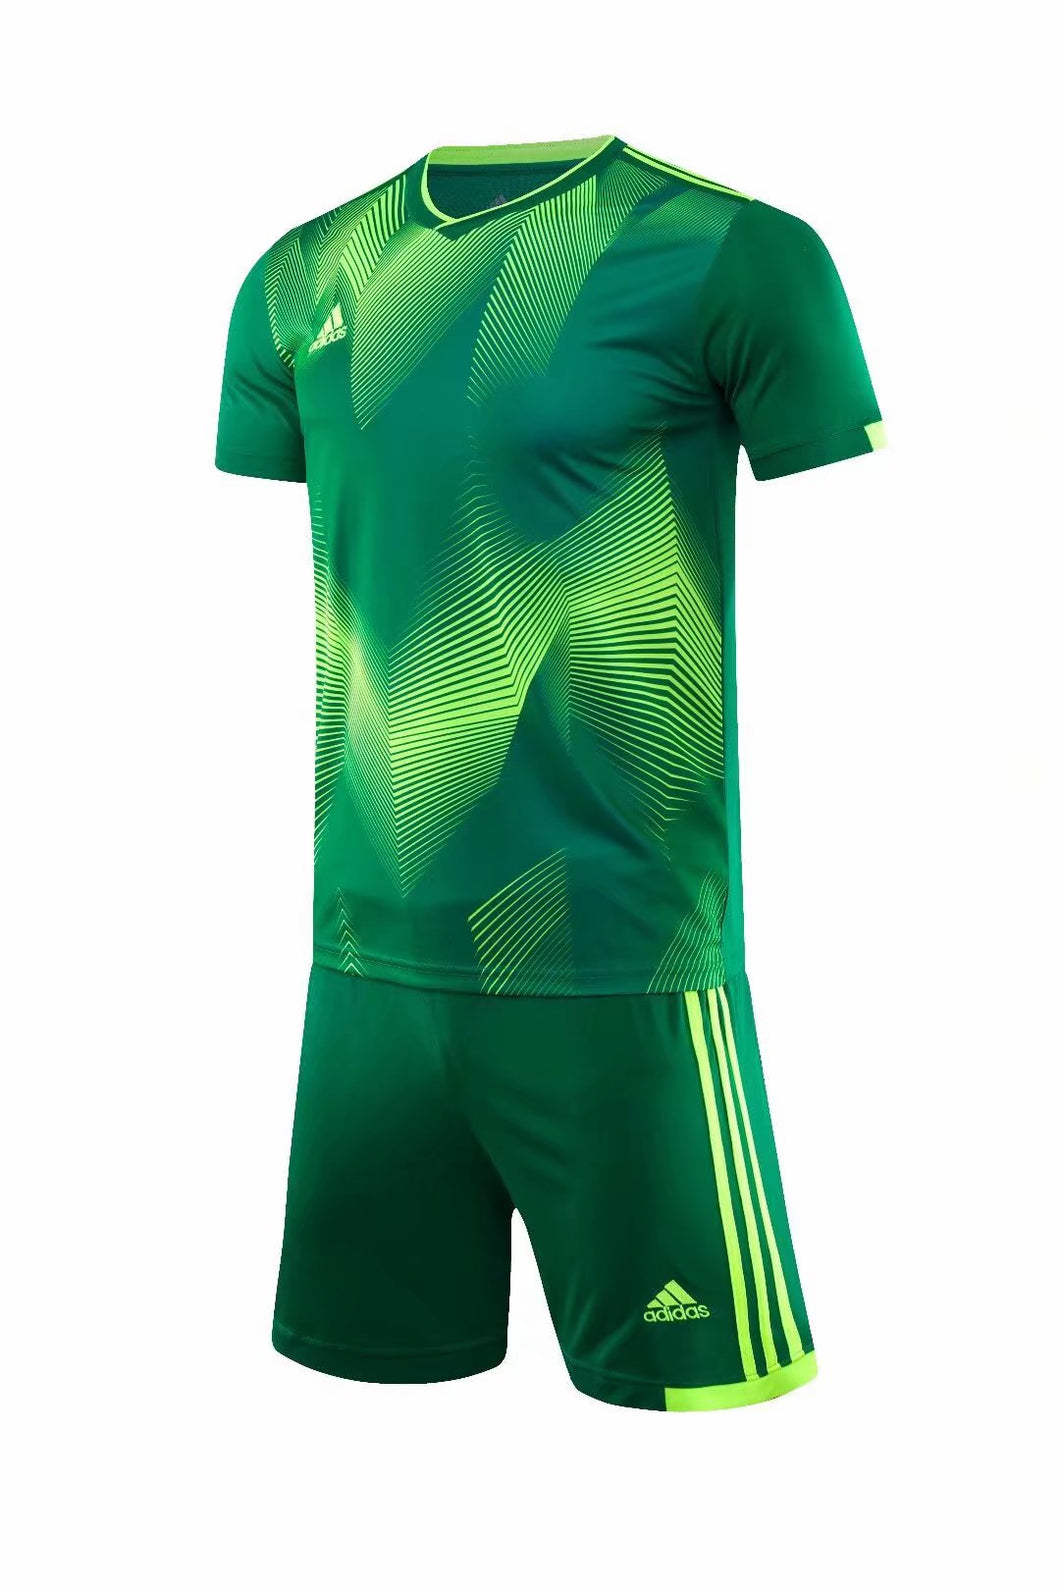 Adidas Full Football Kit Adult Sizes only - 2 tone green and yellow..